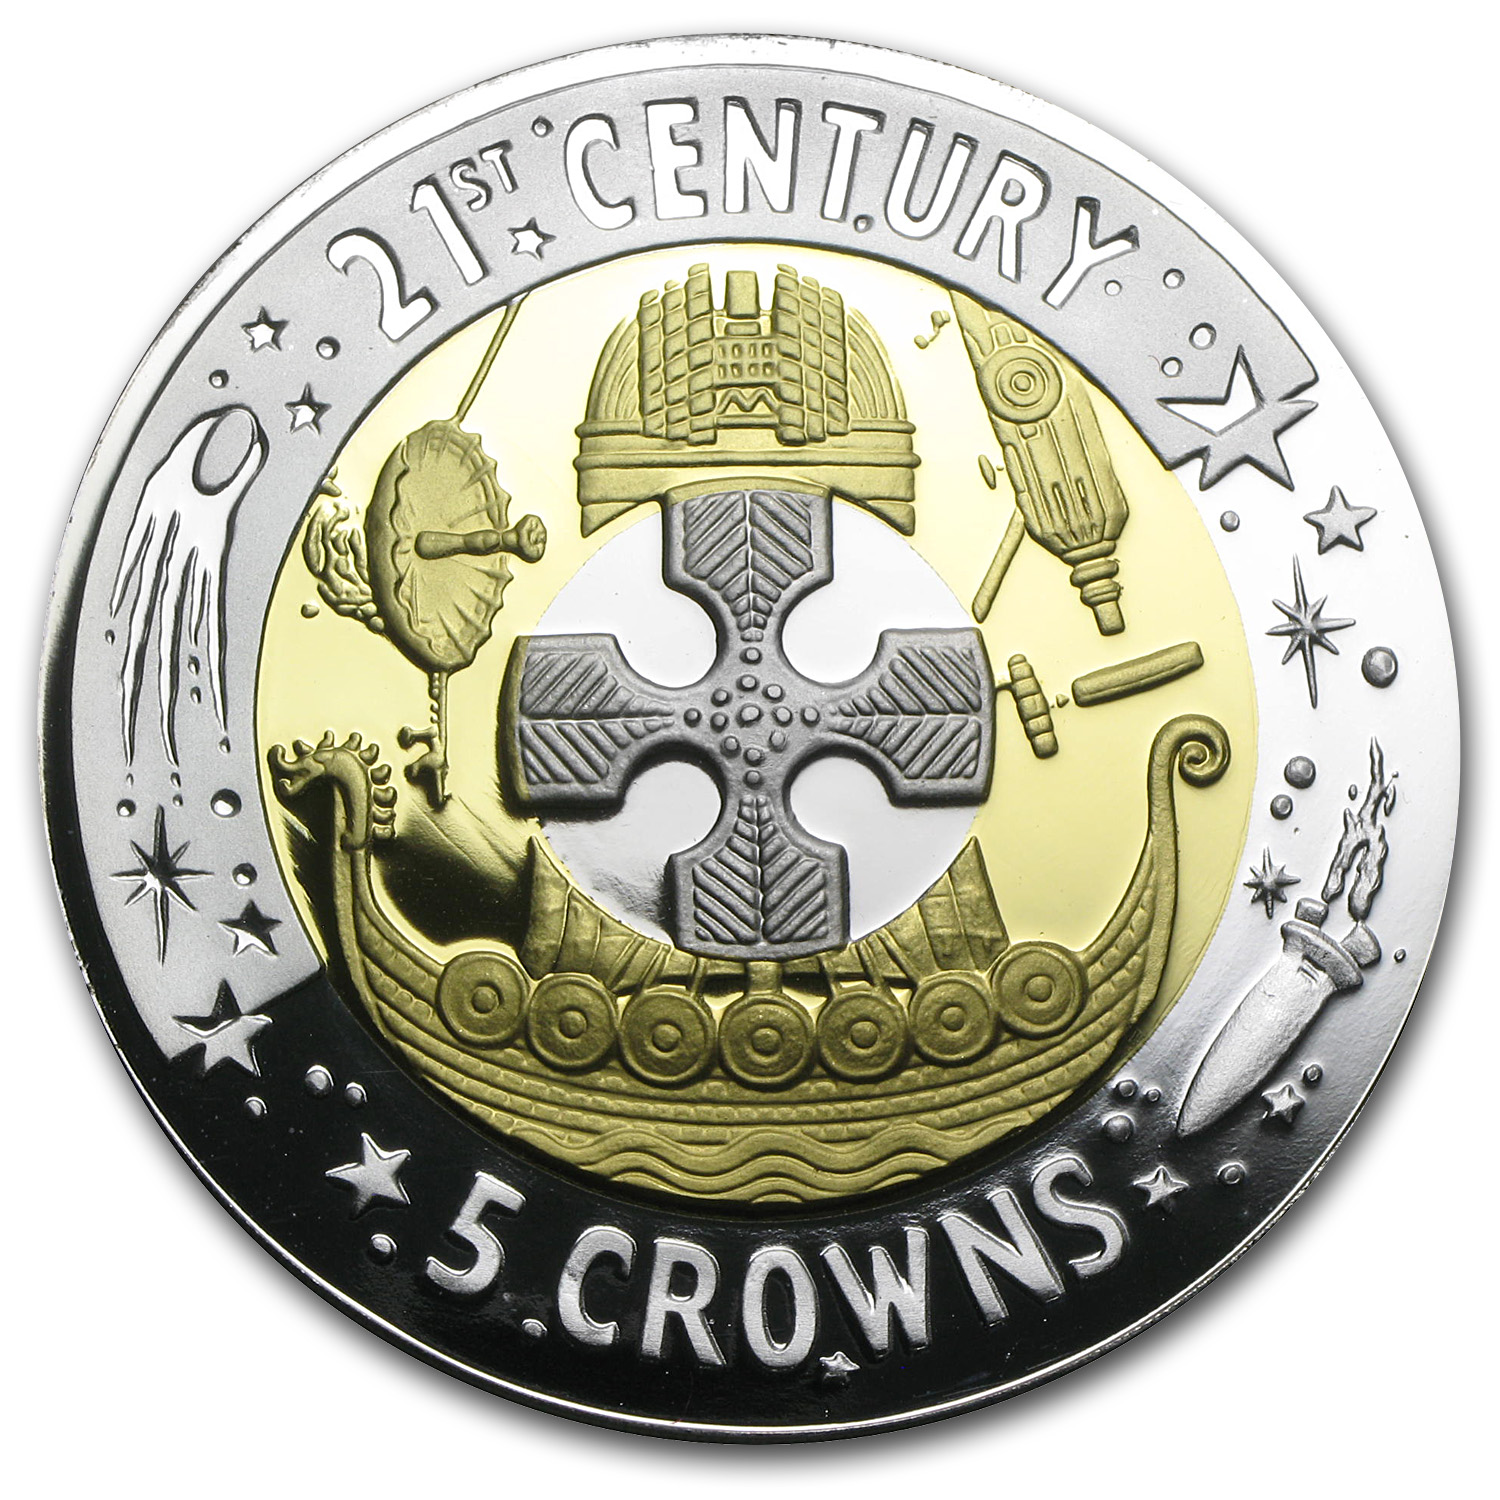 2001 Gibraltar Proof Tri-Metal 5 Crown